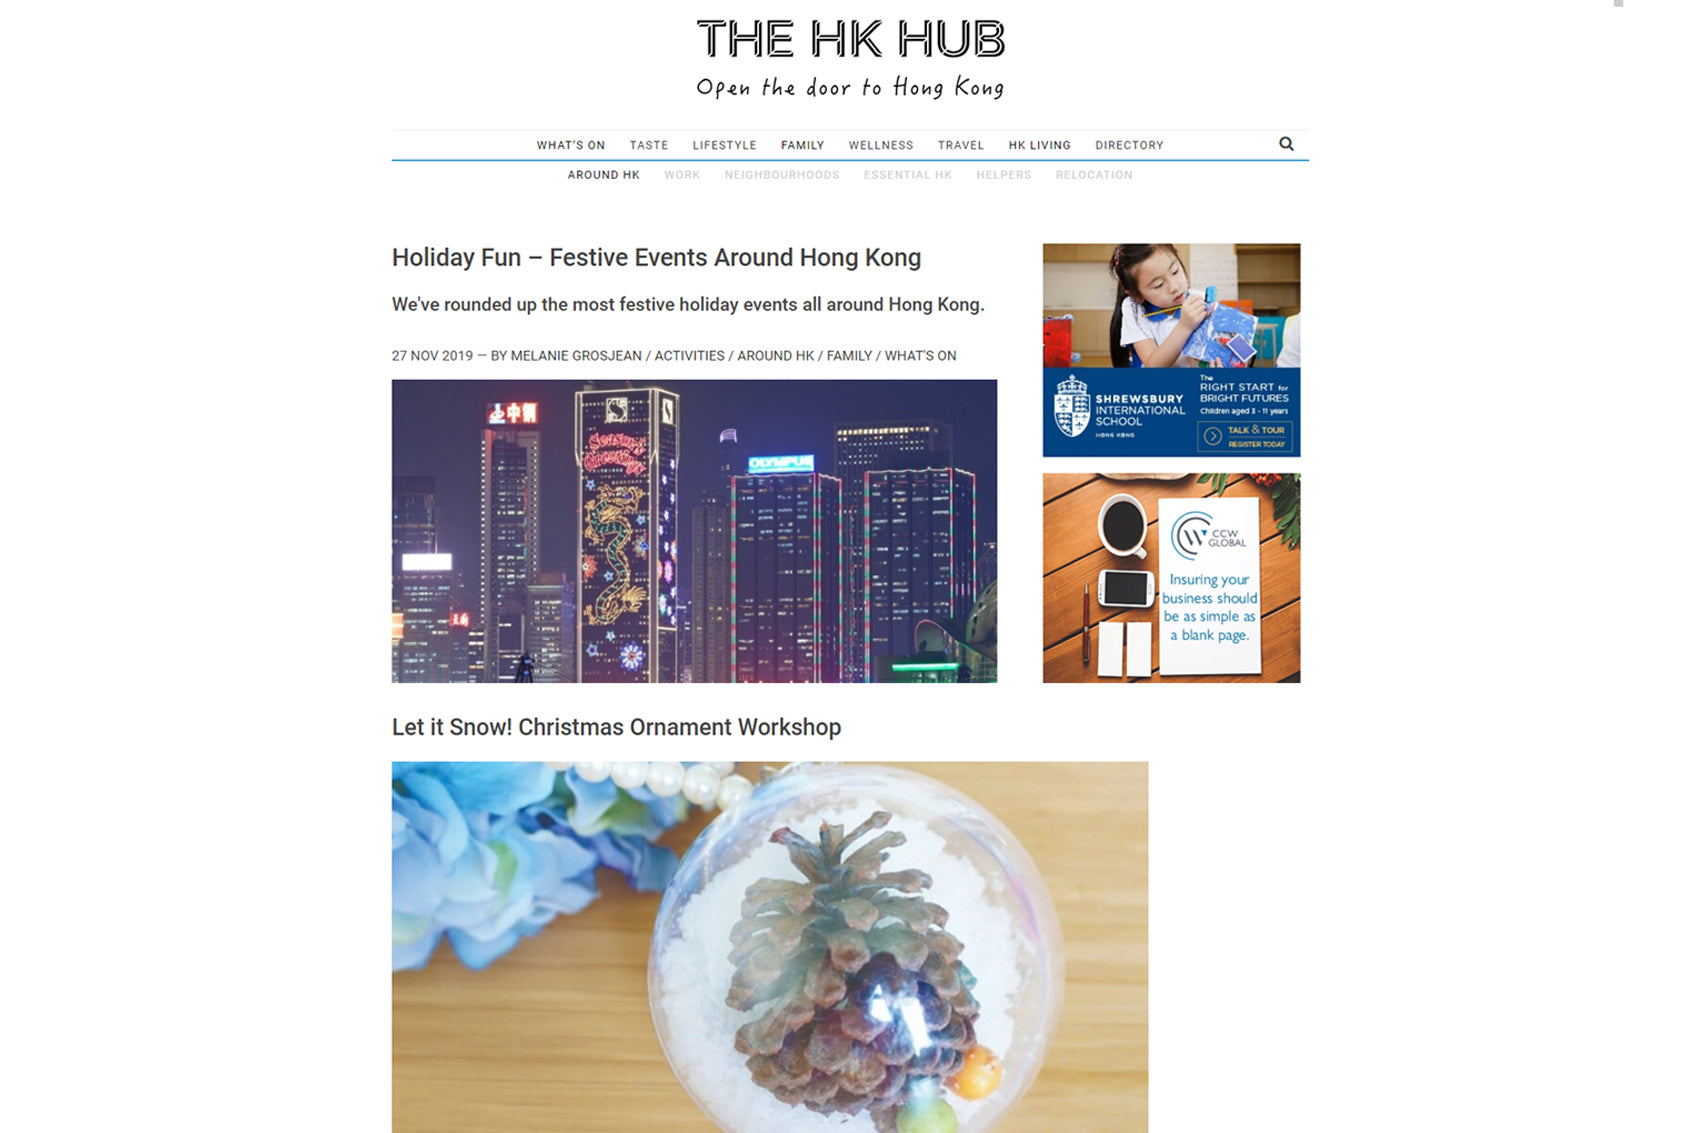 Featured in The HK Hub: Holiday Fun - Festival Events Around HK